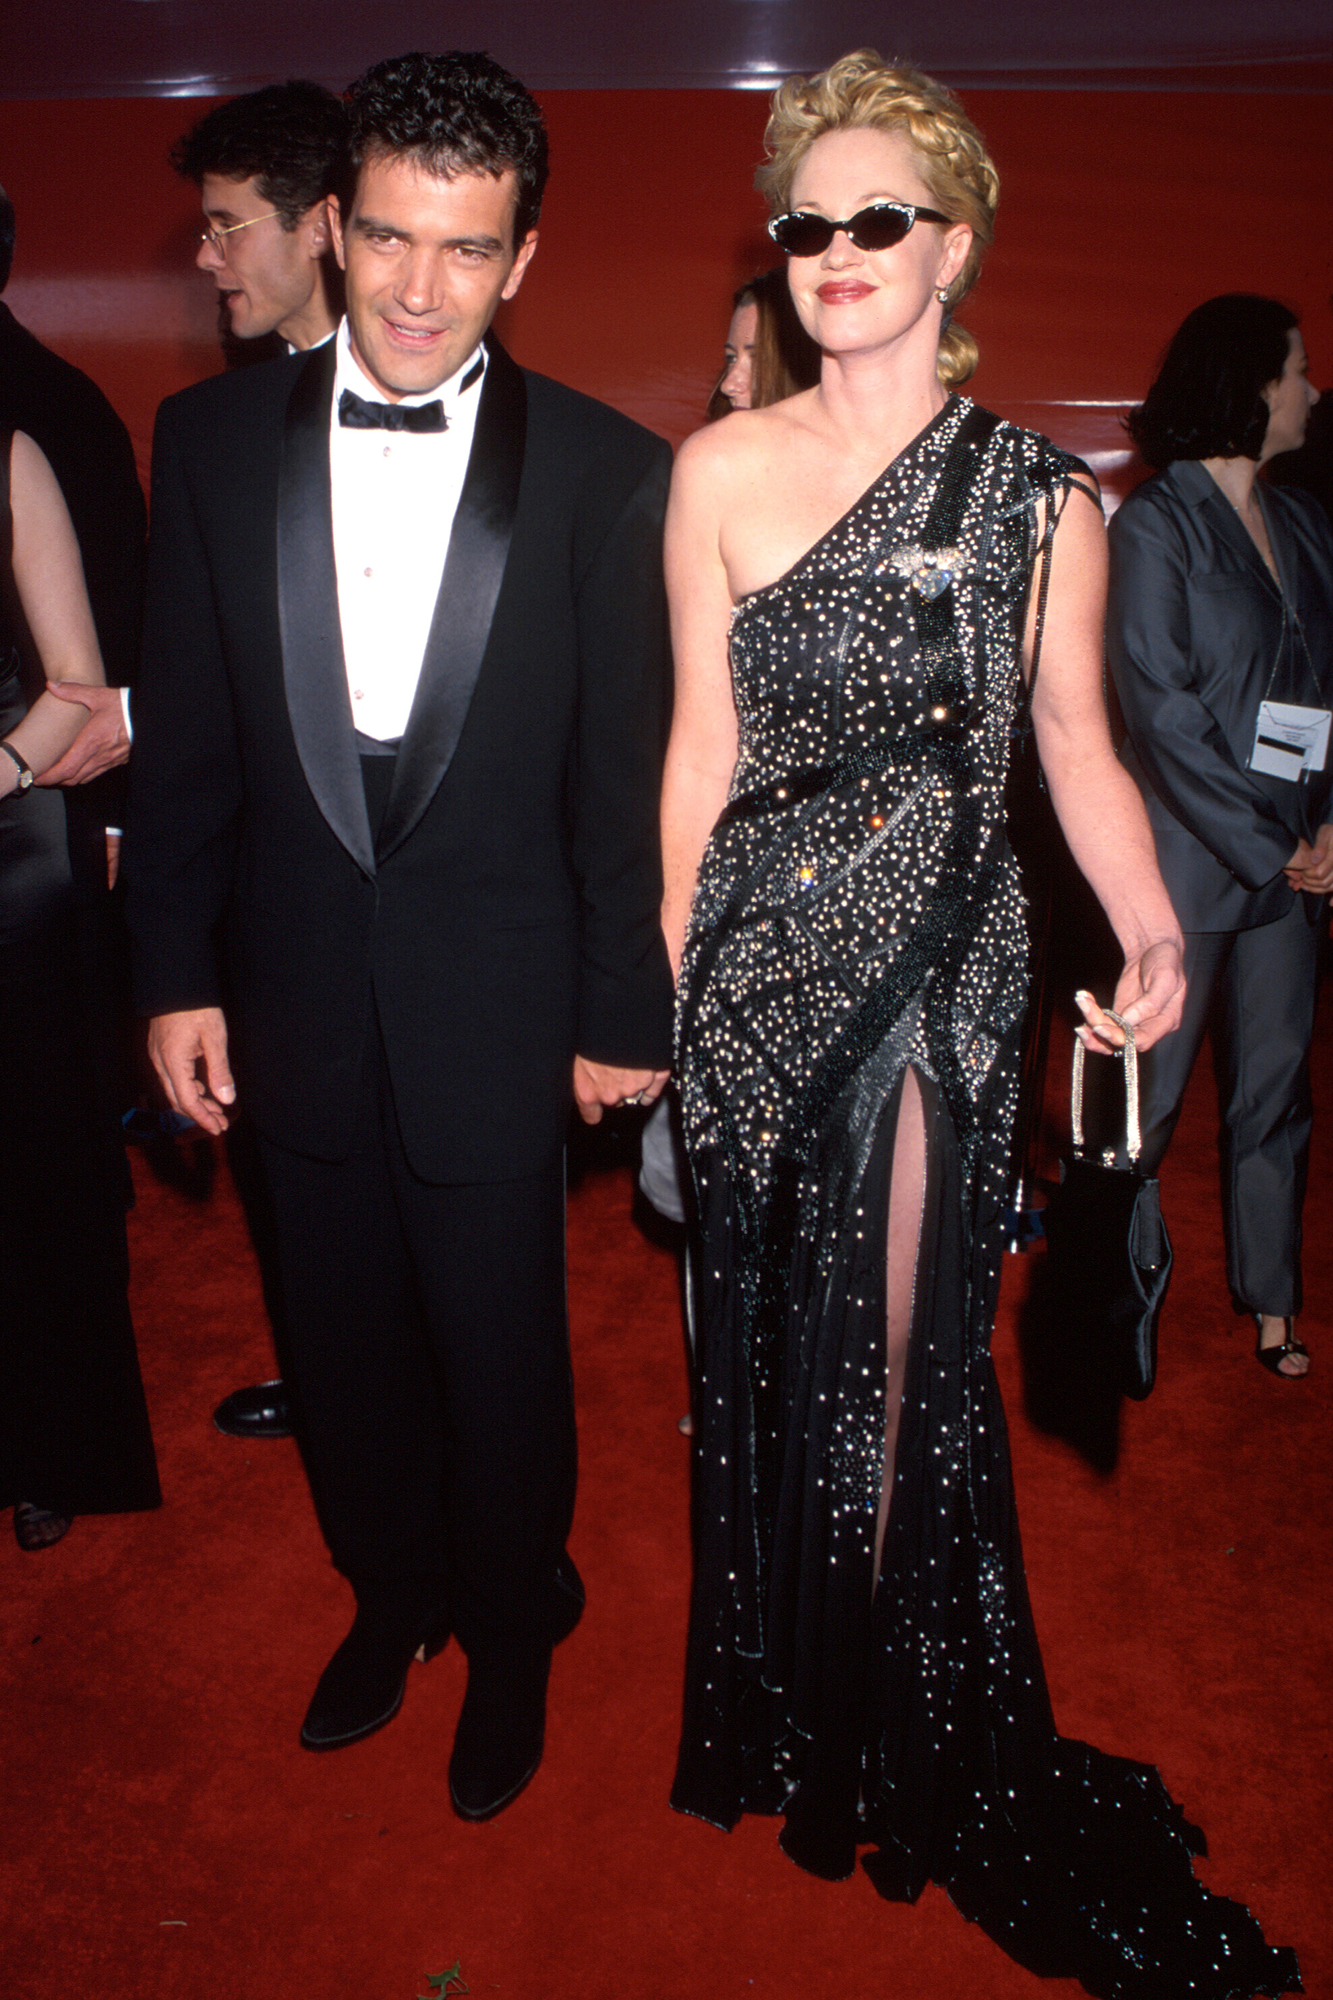 Melanie Griffith;Antonio Banderas [& Wife #2]